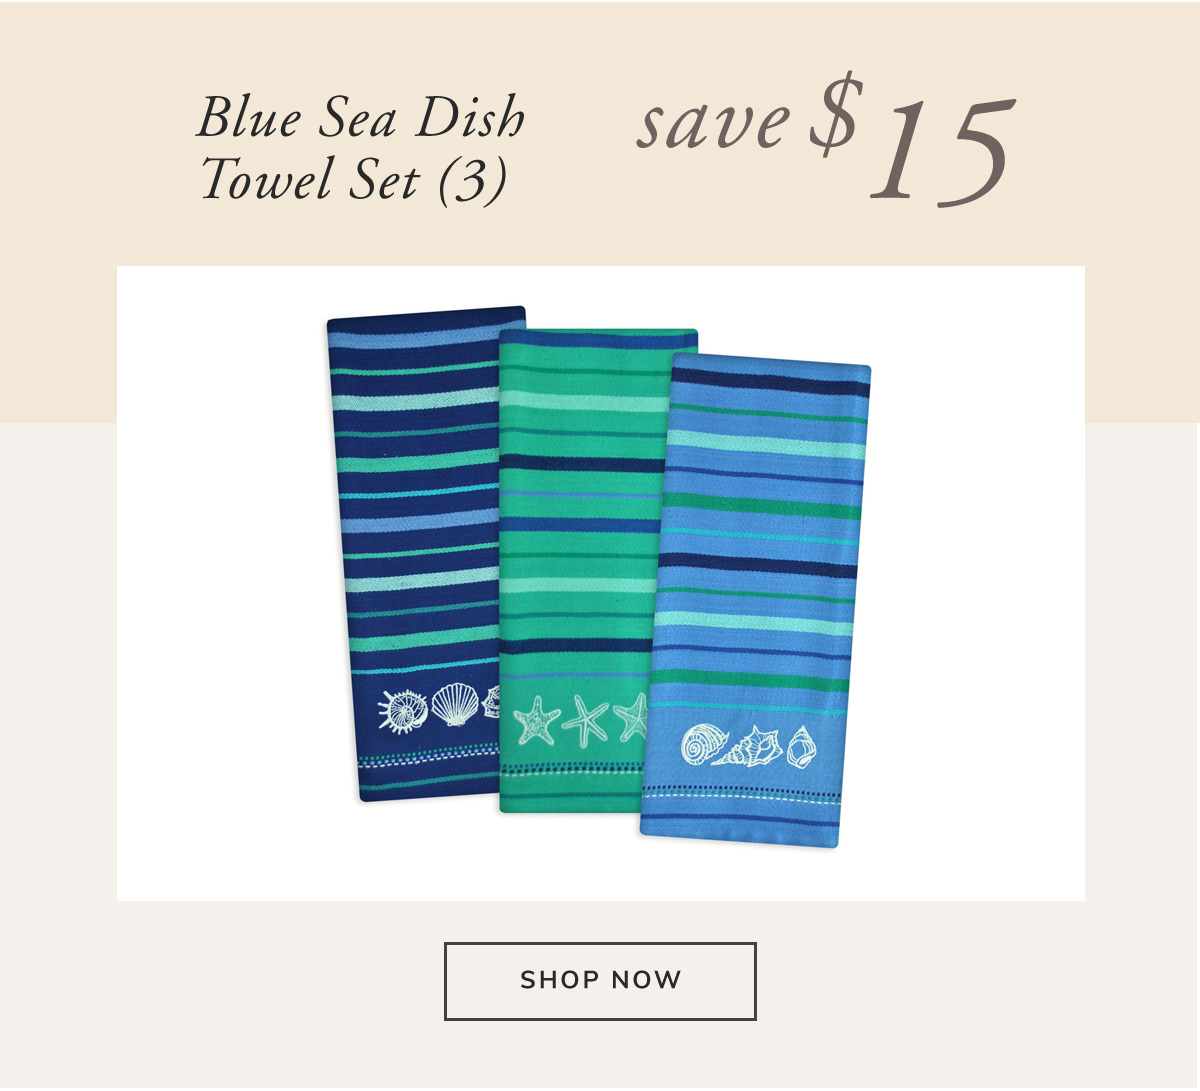 Embroidered Blue Sea Dish Towel Set of 3. Save $15 | SHOP NOW